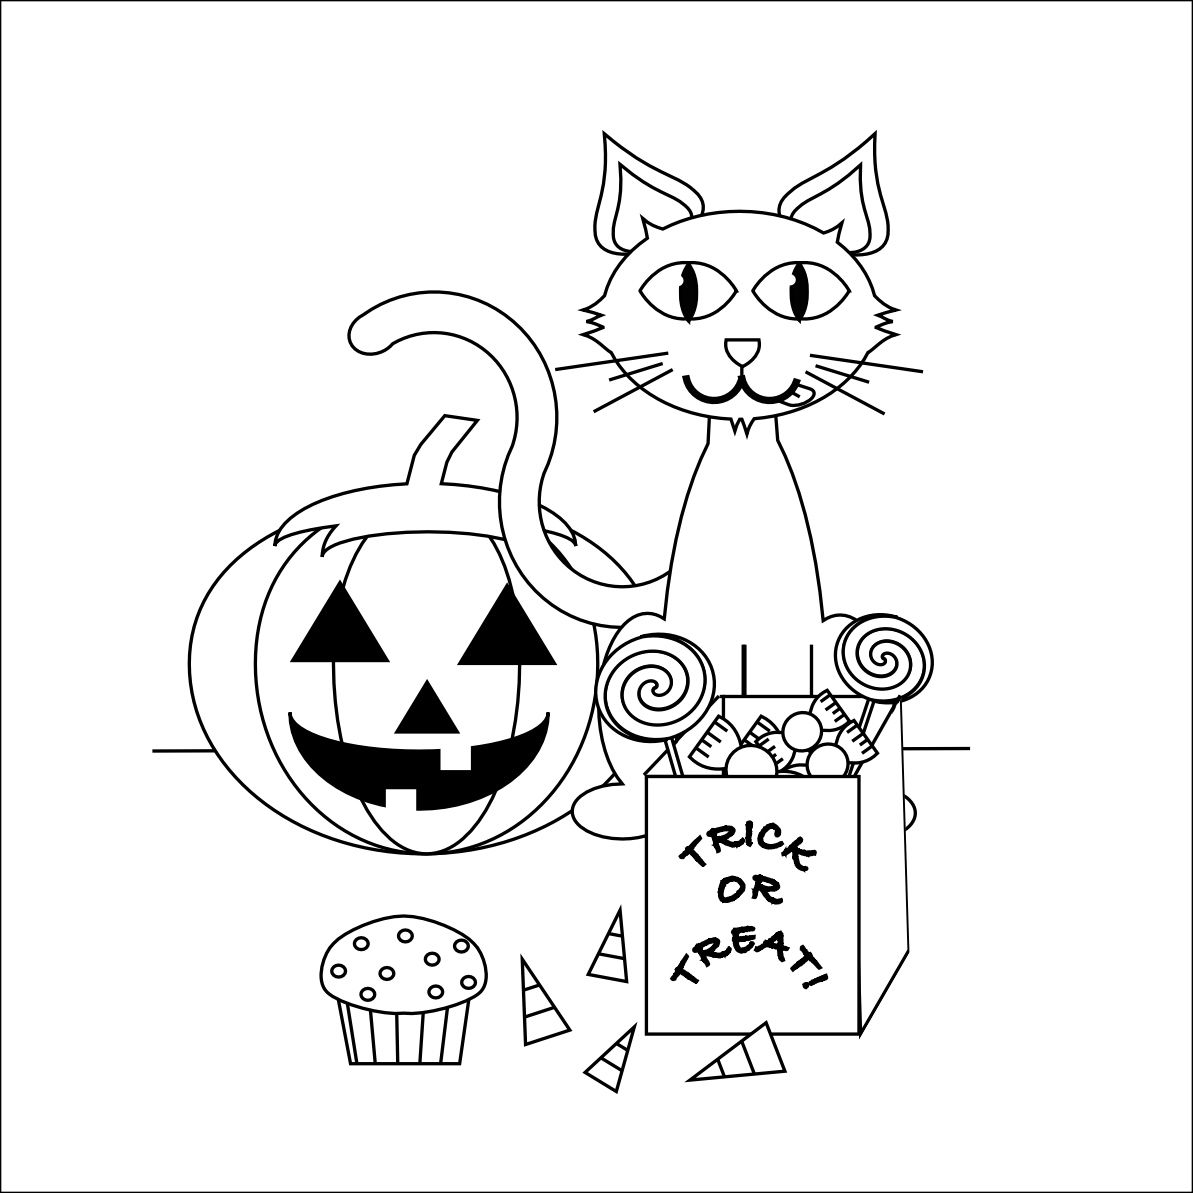 Download Smarty Pants Fun Printables | Halloween coloring pages, Minion coloring pages, Pumpkin coloring ...